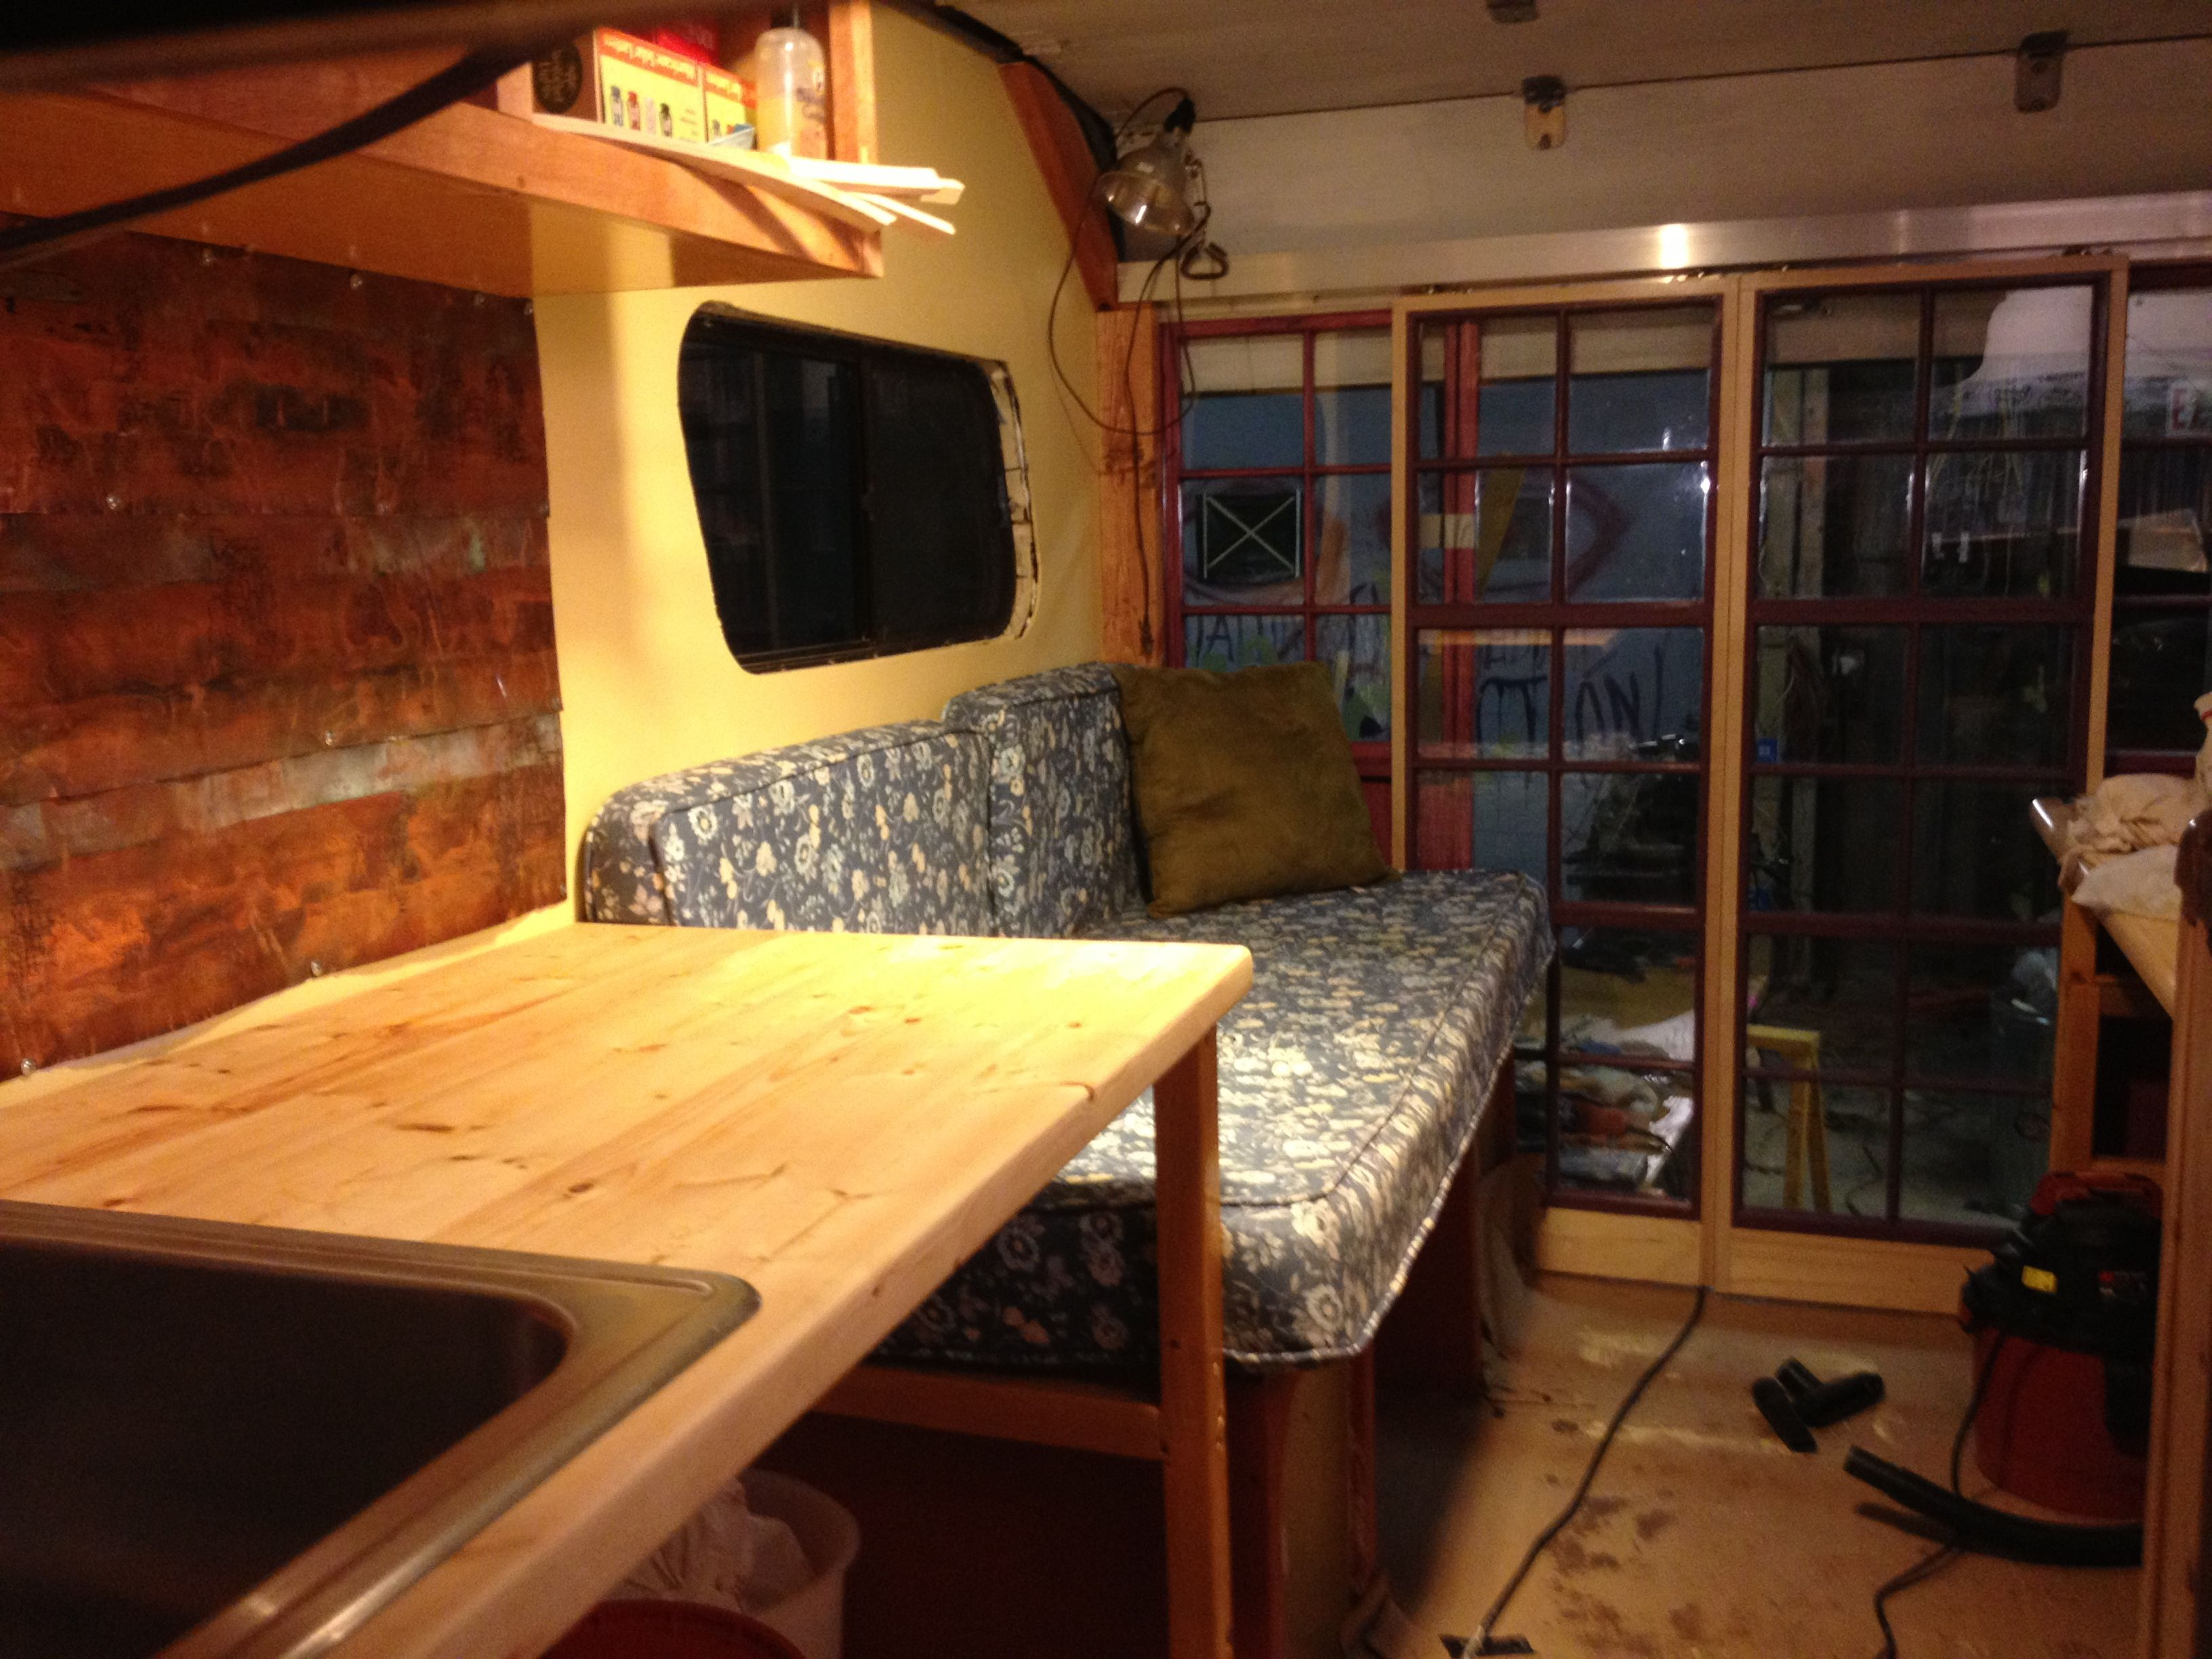 Uhaul conversion with kitchen bath couch sleeping loft in